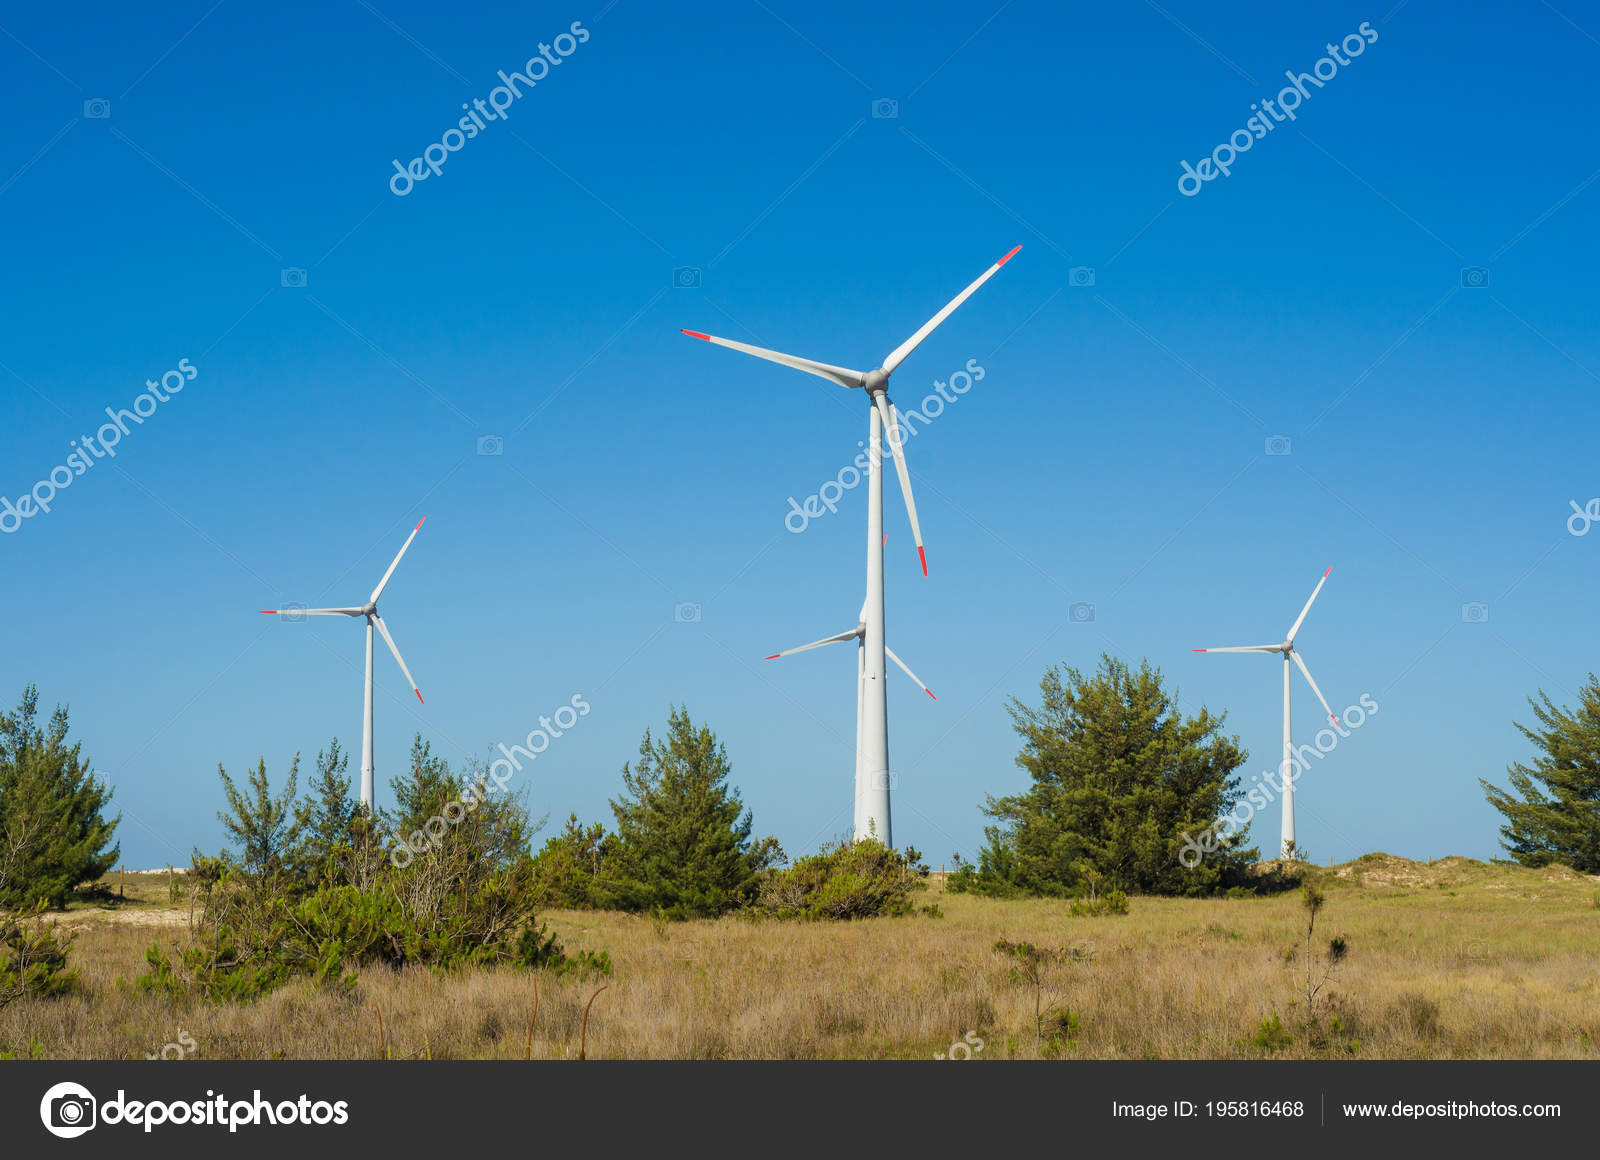 Great Concept Renewable Sustainable Energy Wind Field Wind